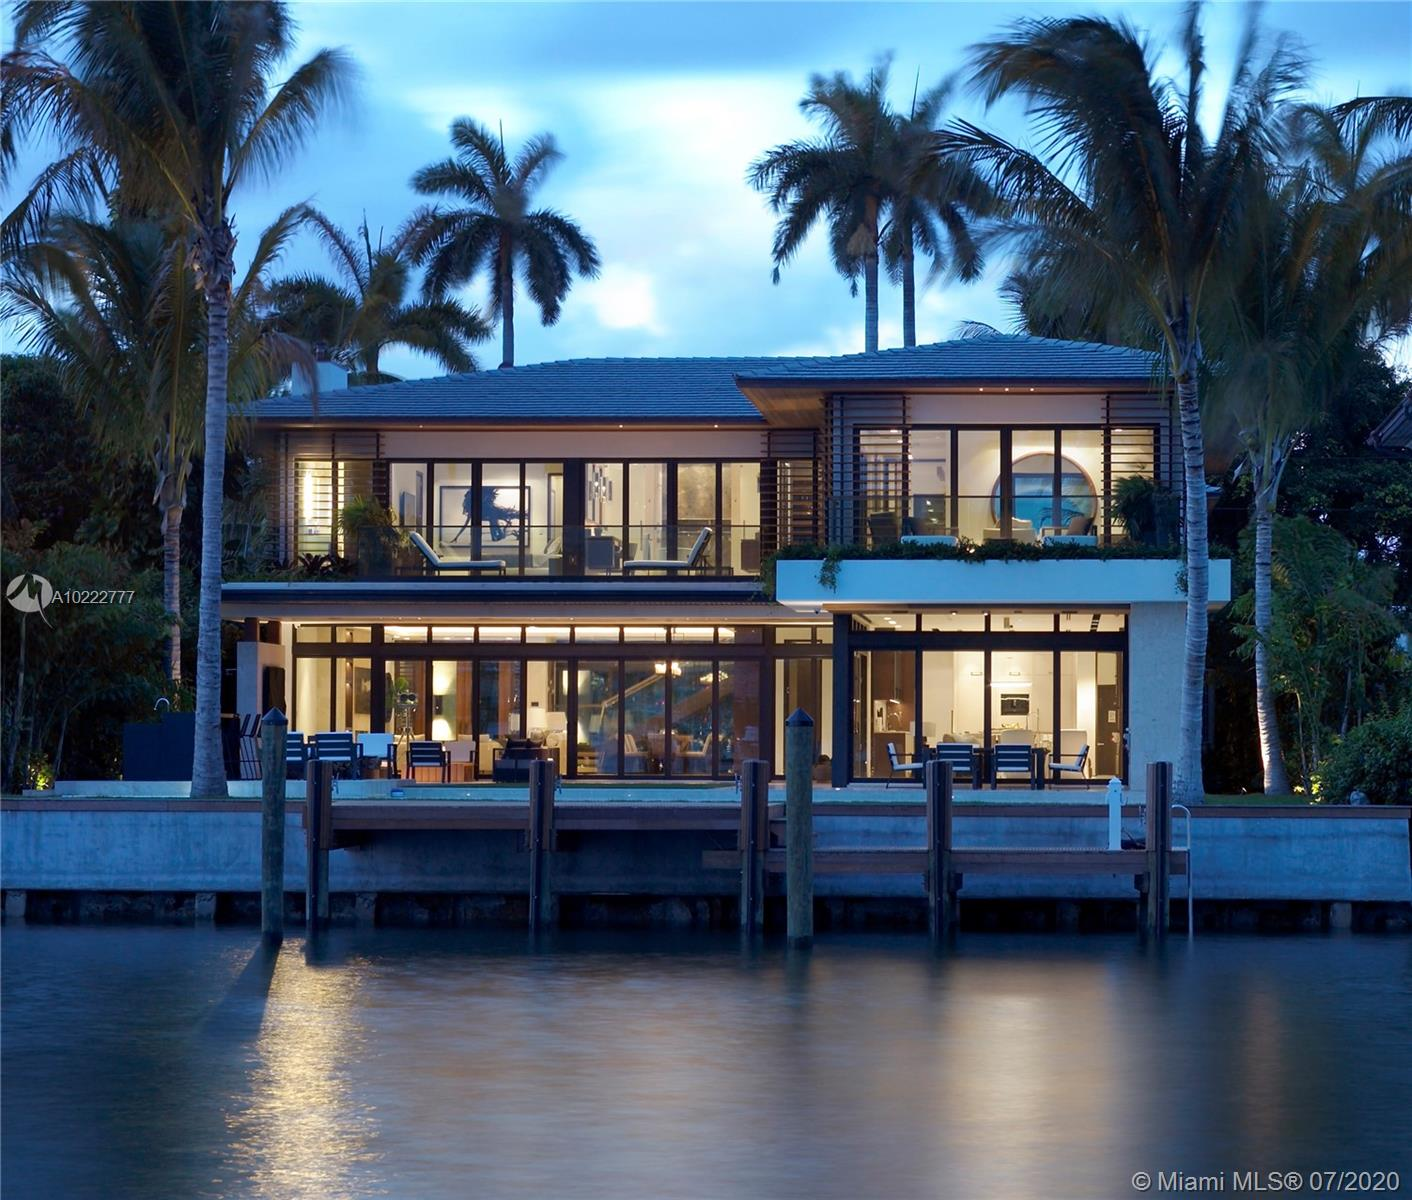 1826 W 23 ST  For Sale A10222777, FL